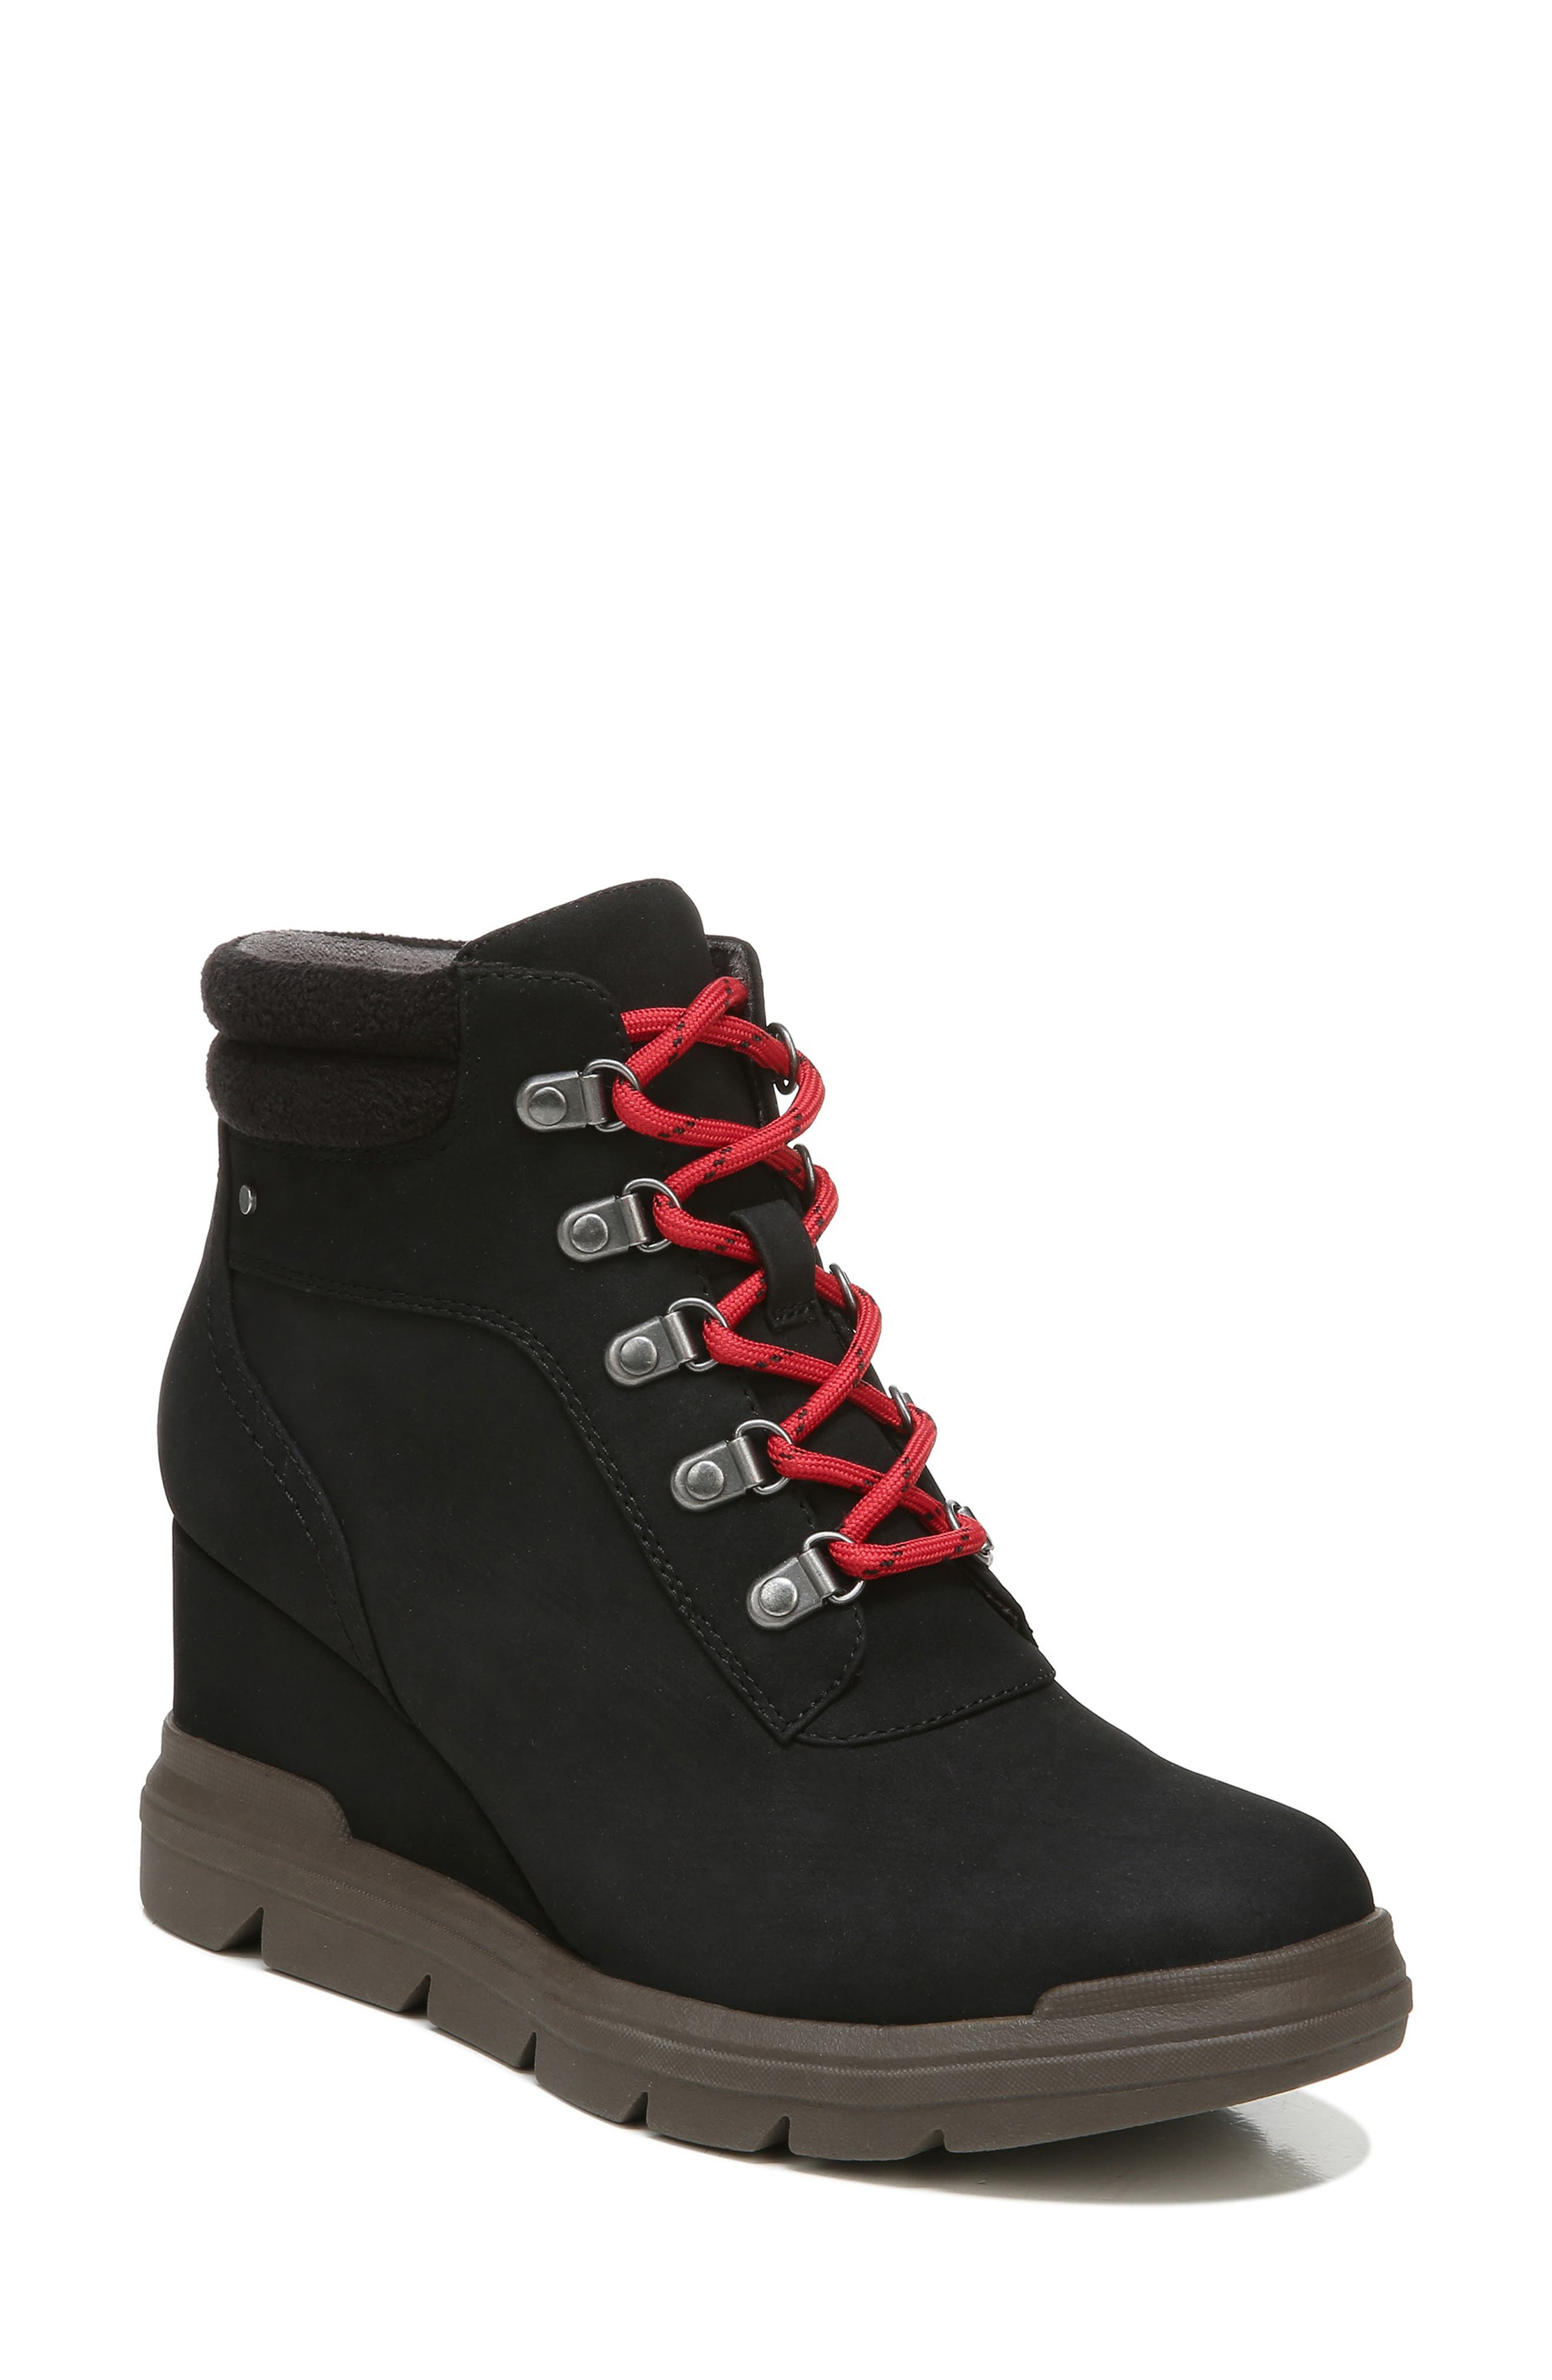 Reign Wedge Hiking Boot